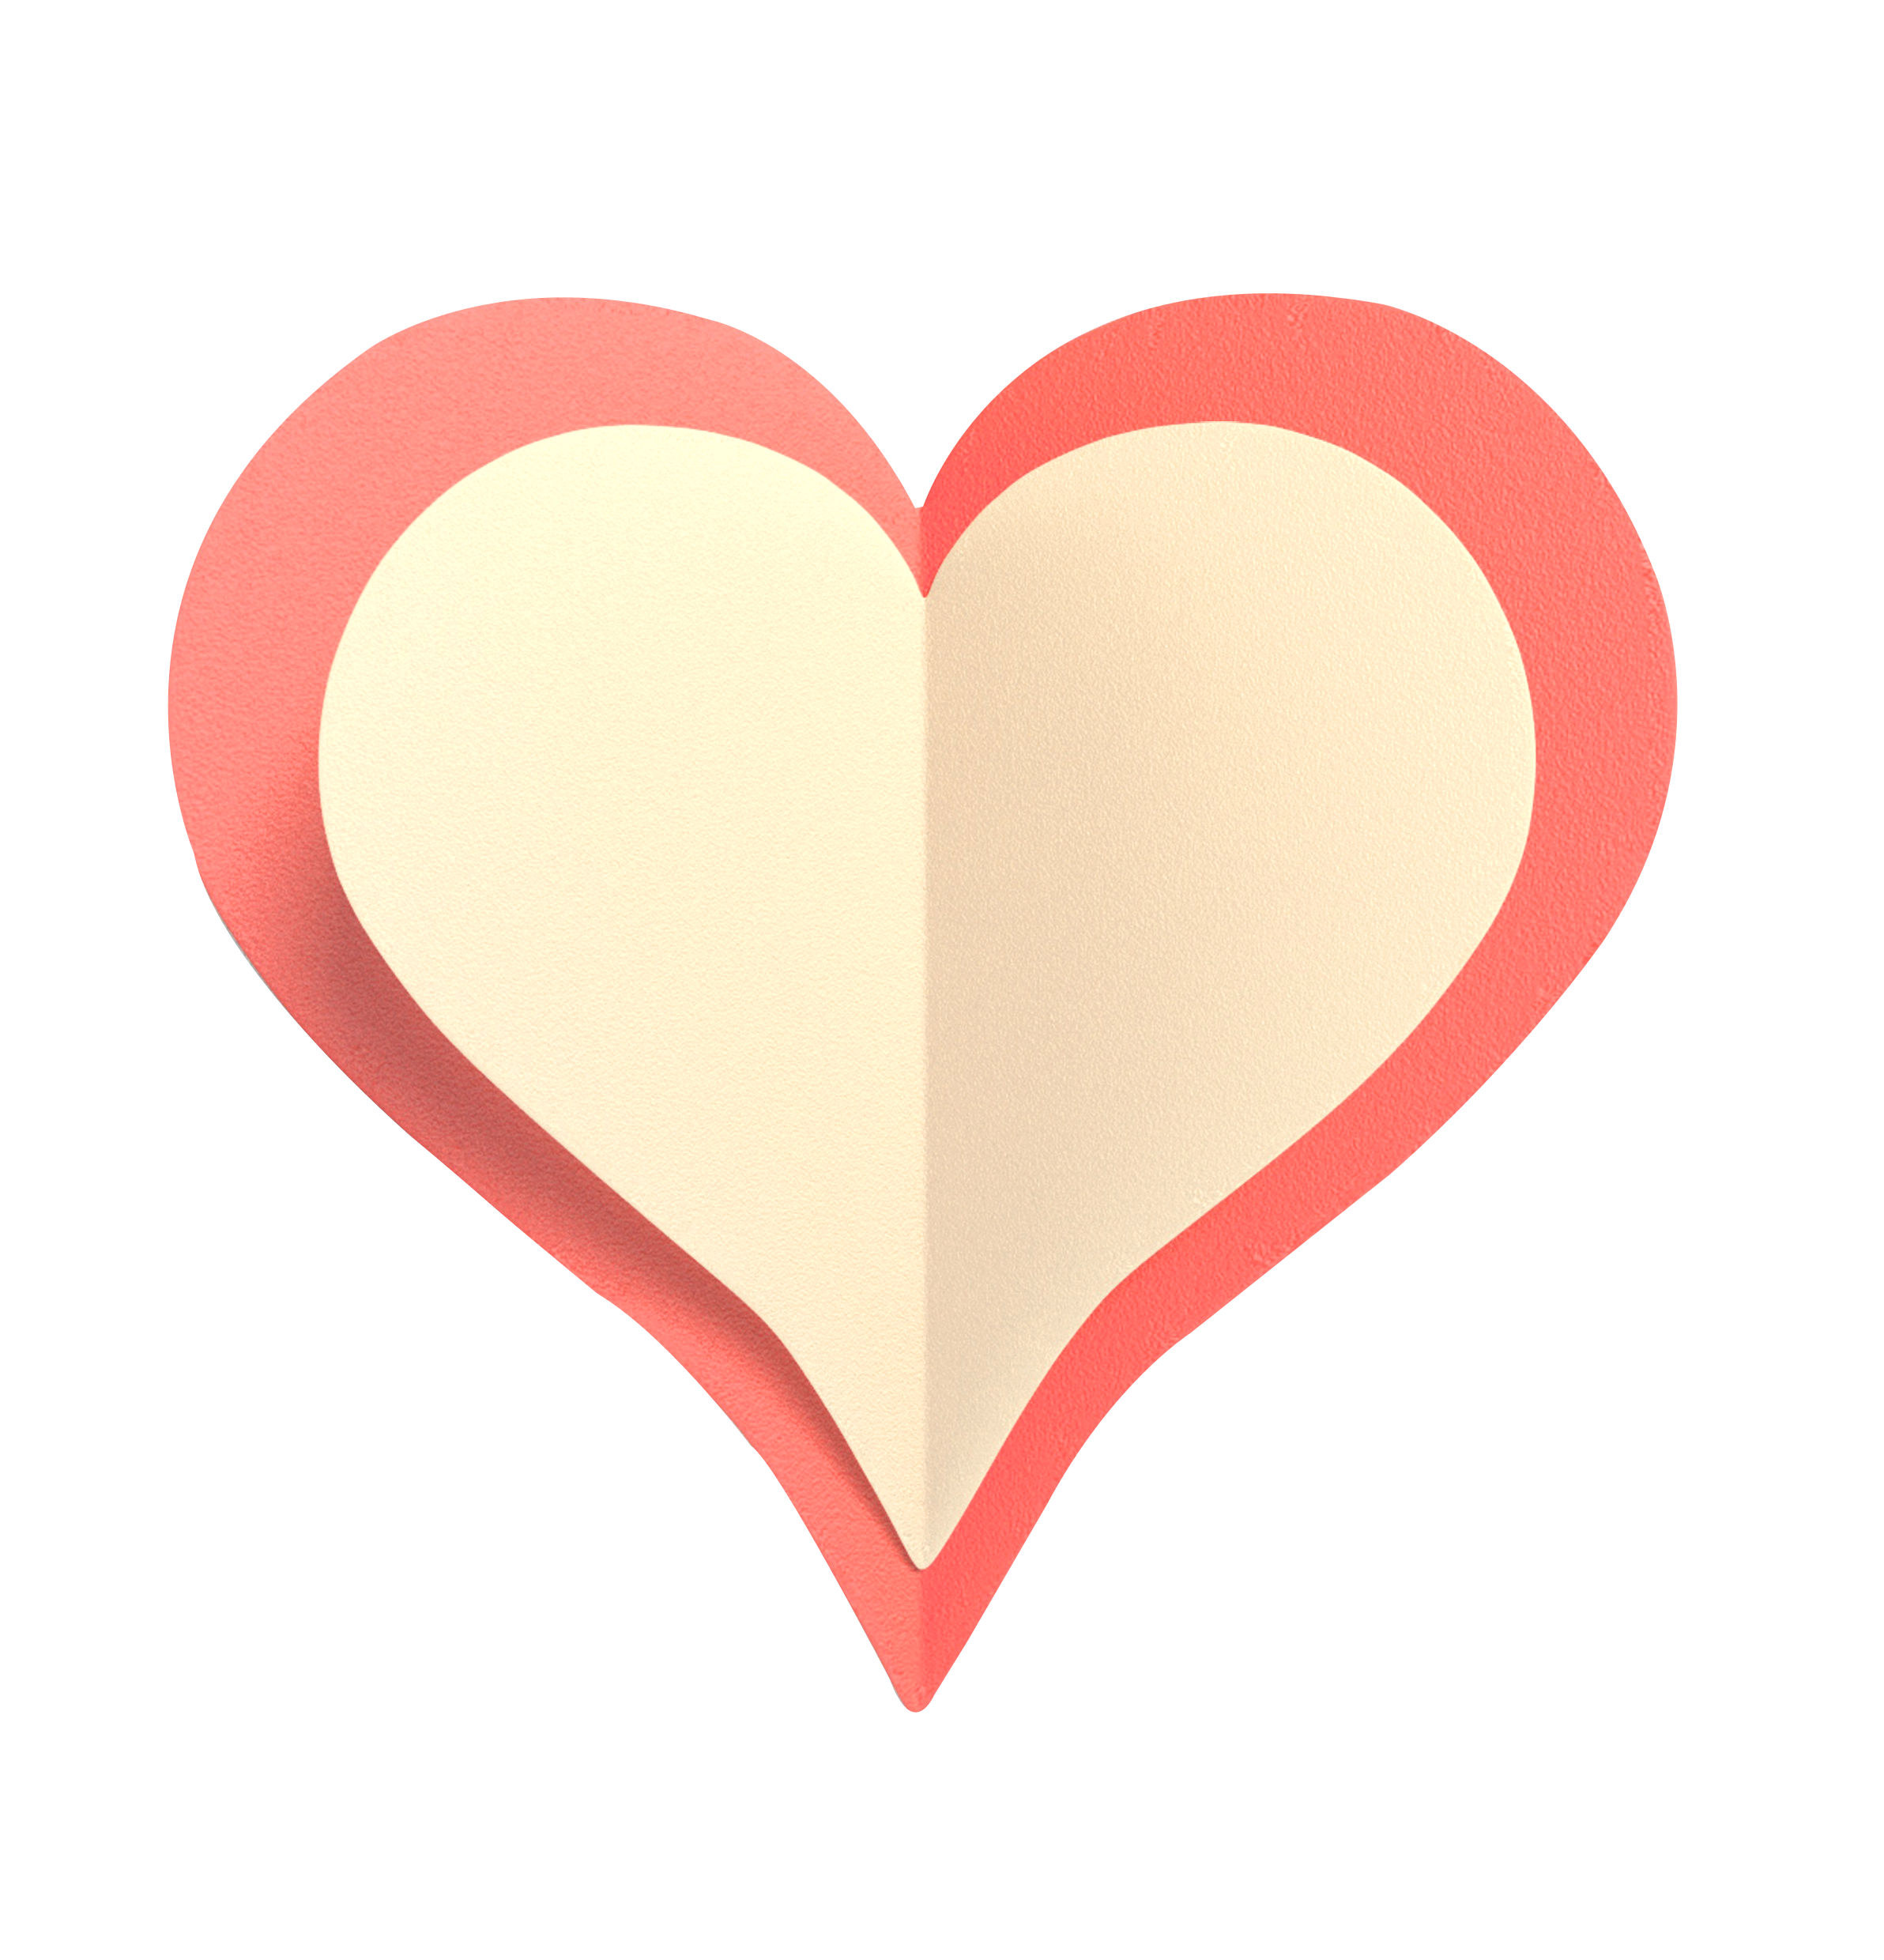 Country heart png. Image pngpix